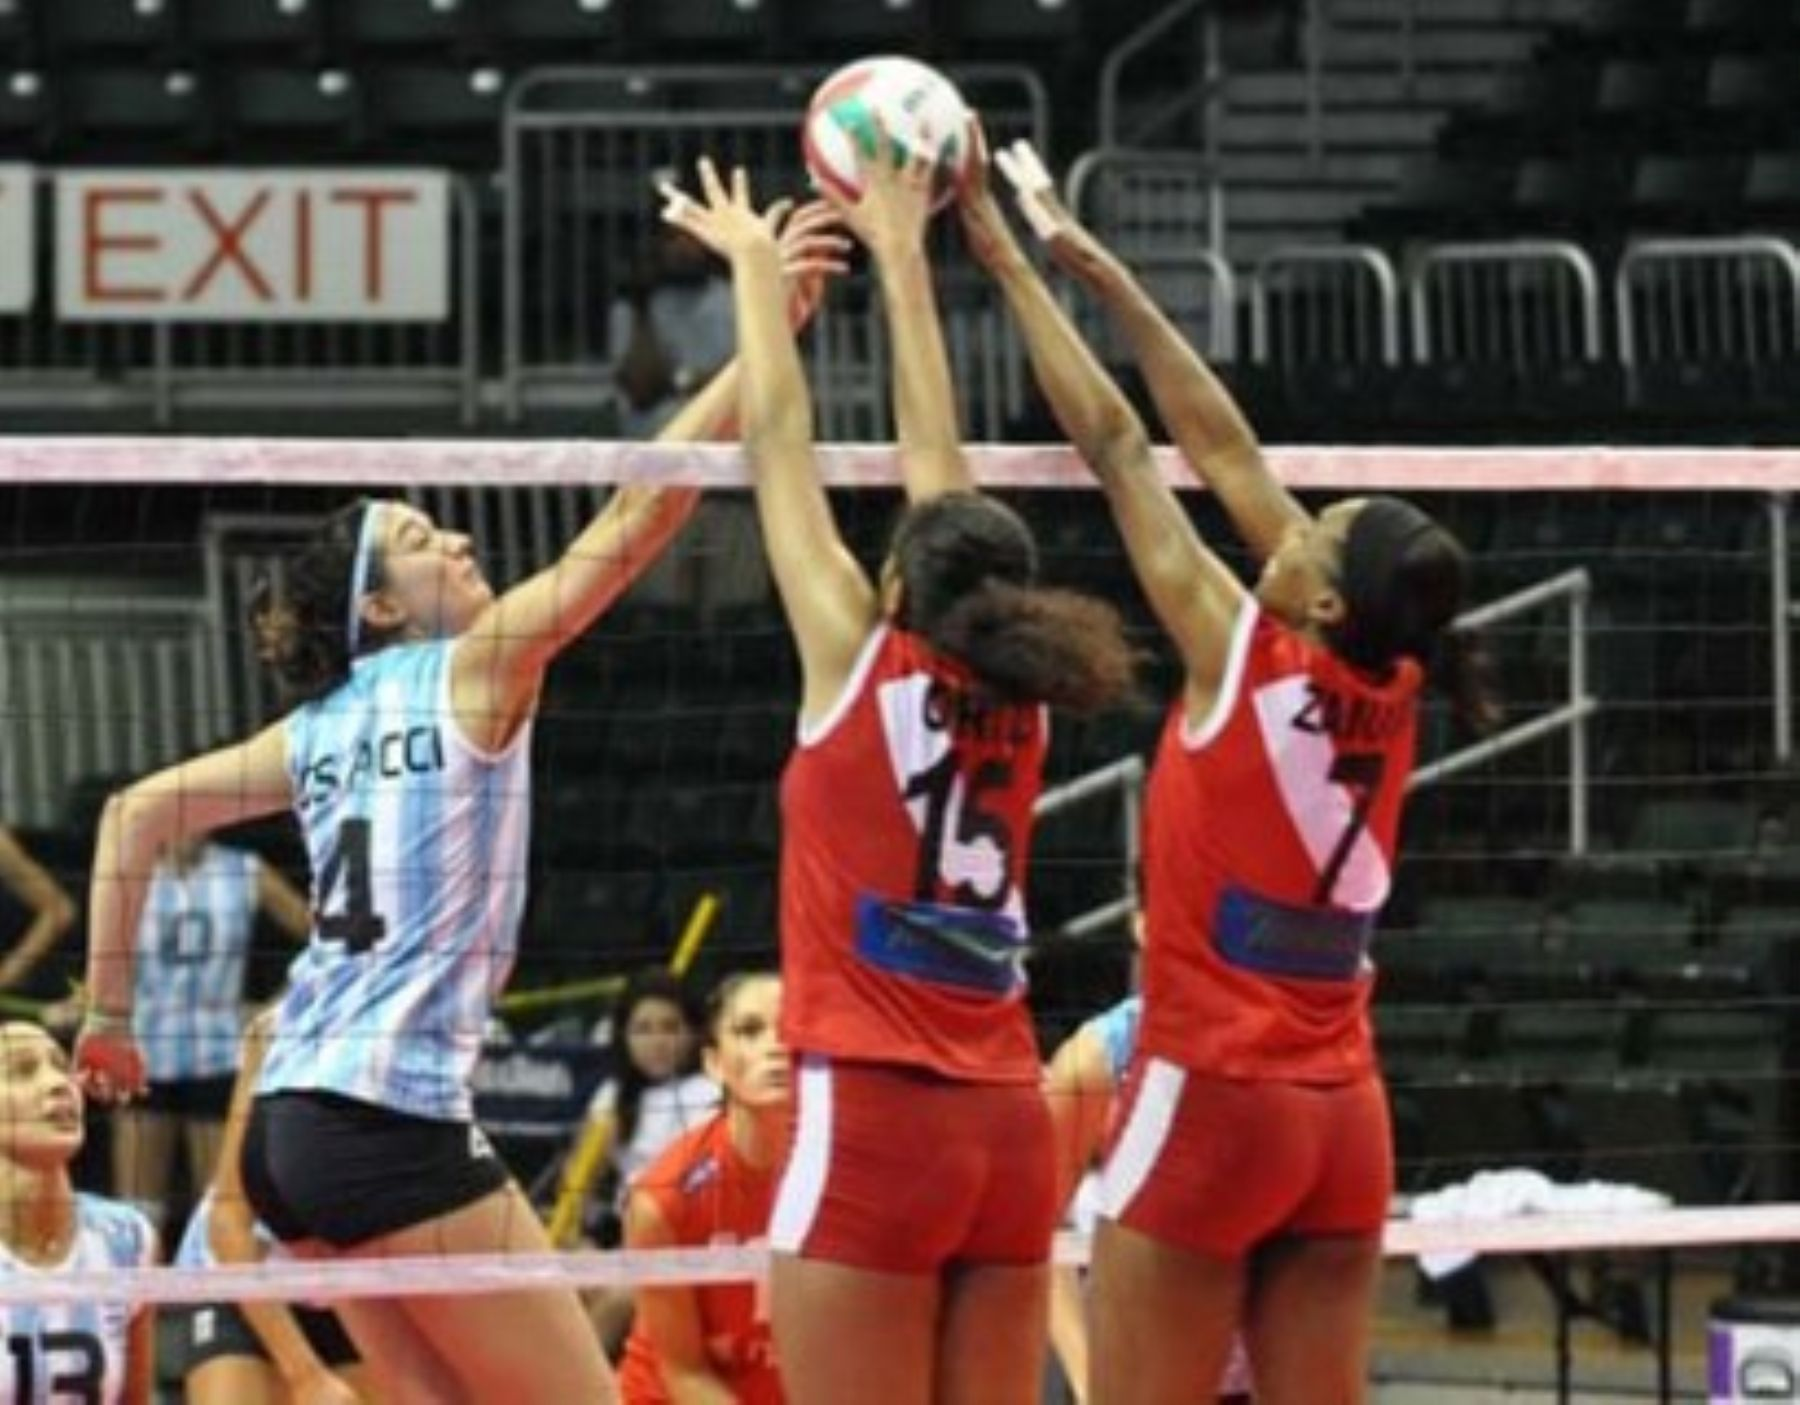 Peru S Volleyball Teams Rewarded With Us 39 000 News Andina Peru News Agency